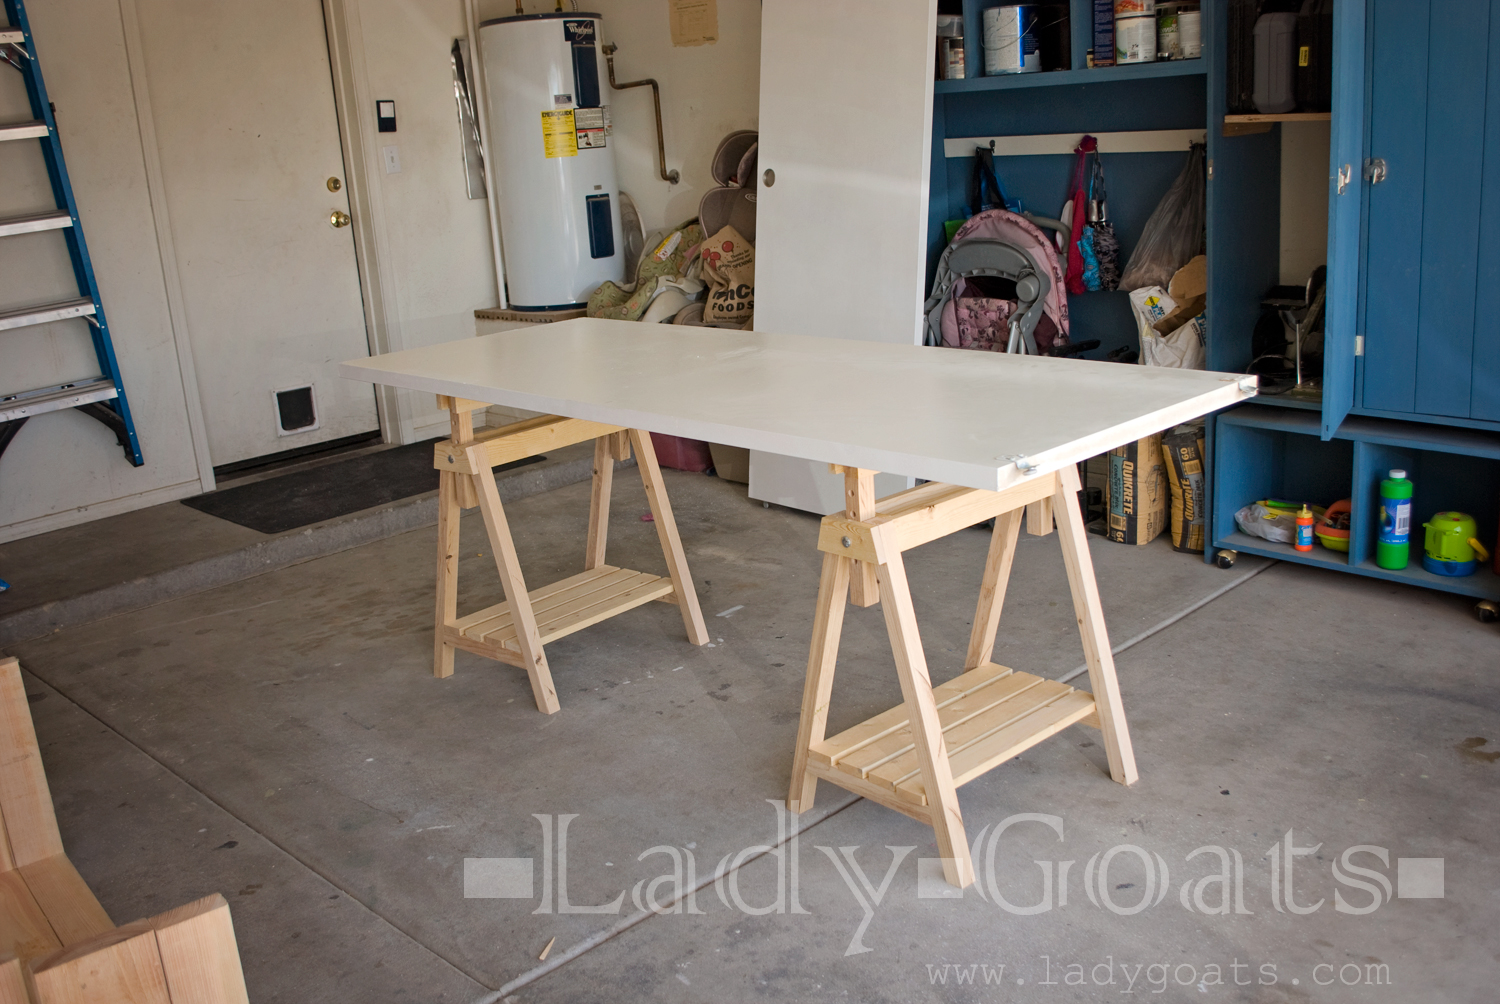 Hereu0027s The First One Finished, And I Used It As A Worktable To Build The  Second. It Was Awesome. Set To The Third Notch, Itu0027s A Little Taller Than  ...